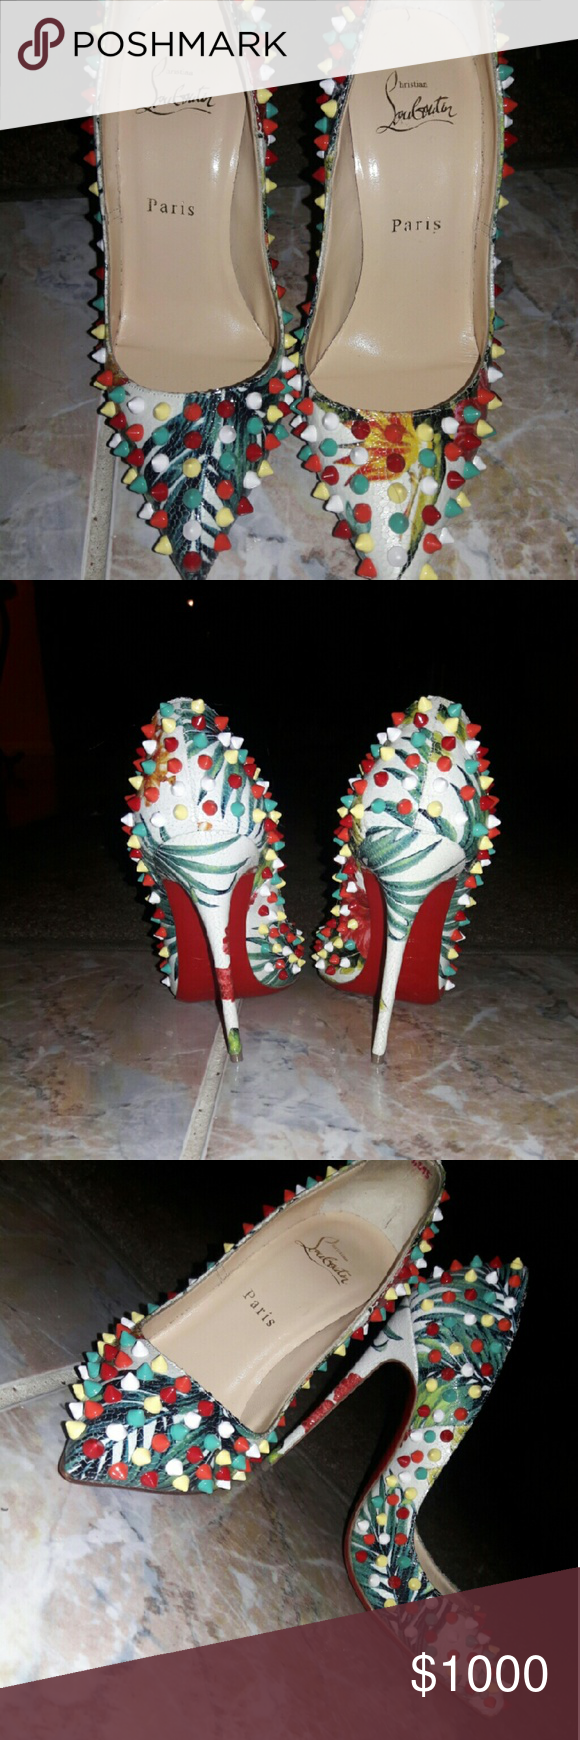 Louis Vuittton Follies Spiked Floral Red Sole Pump Follies Spiked Floral 120mm Red Sole Pump, White/Multi Louis Vuitton Shoes Heels